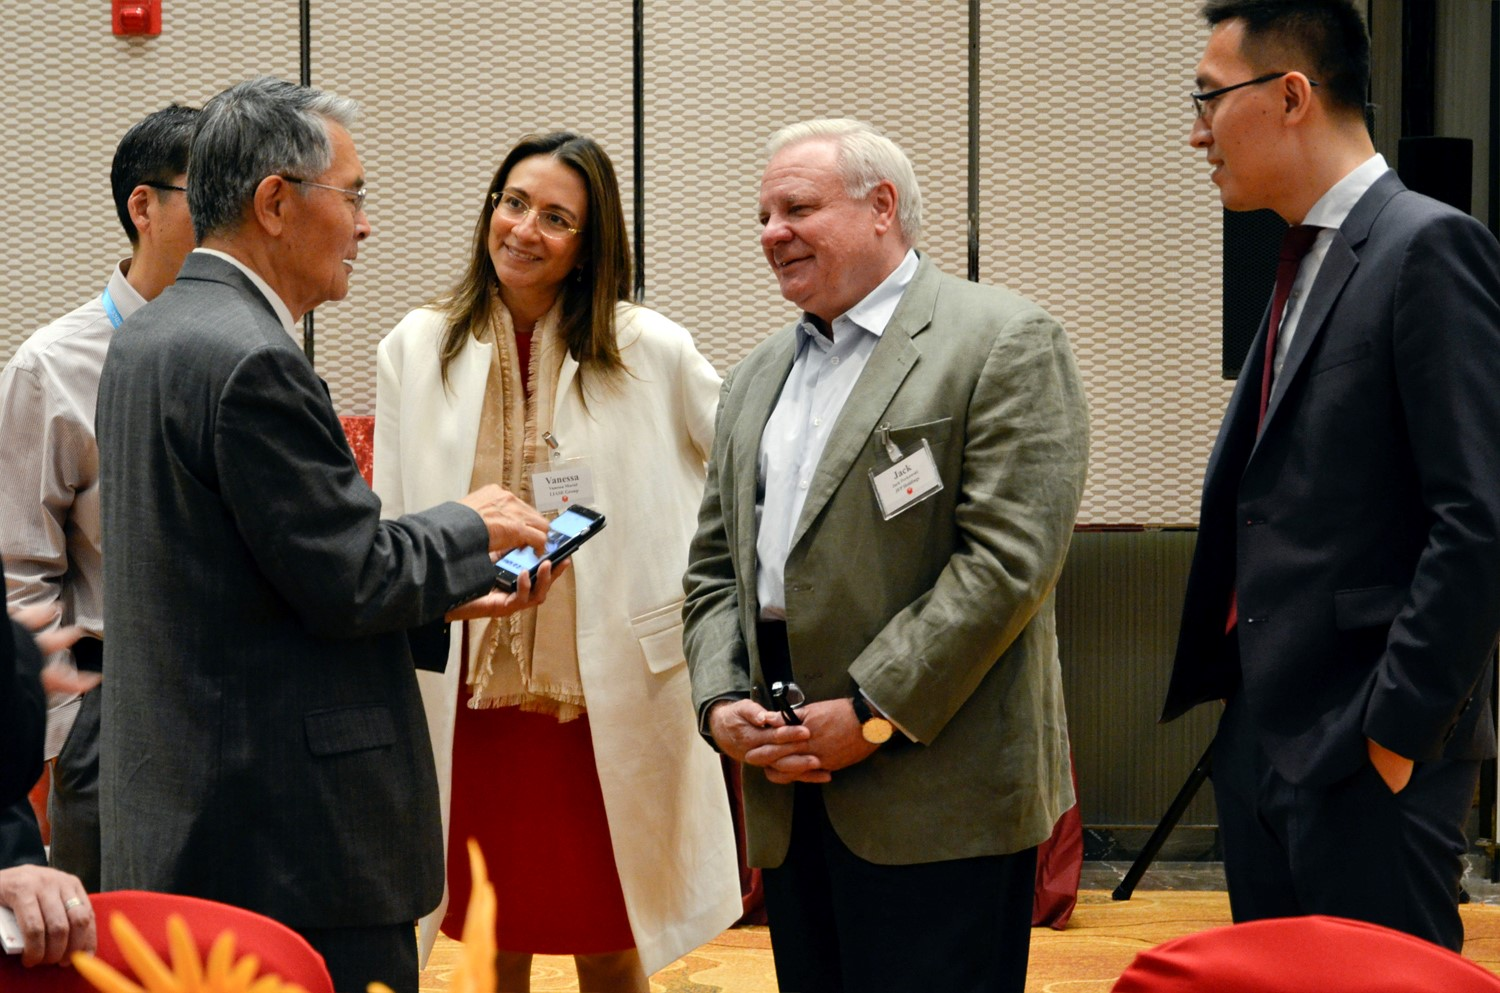 Vanessa Moriel, LIASE Group Managing Director Asia (middle left); Jack Perkowski, Managing Partner, JFP Holdings (middle right); Dr. Wang (right) and Lei Xing, Editor-in-Chief, CBU (left) at the CBU/CAR 2016 Conference.